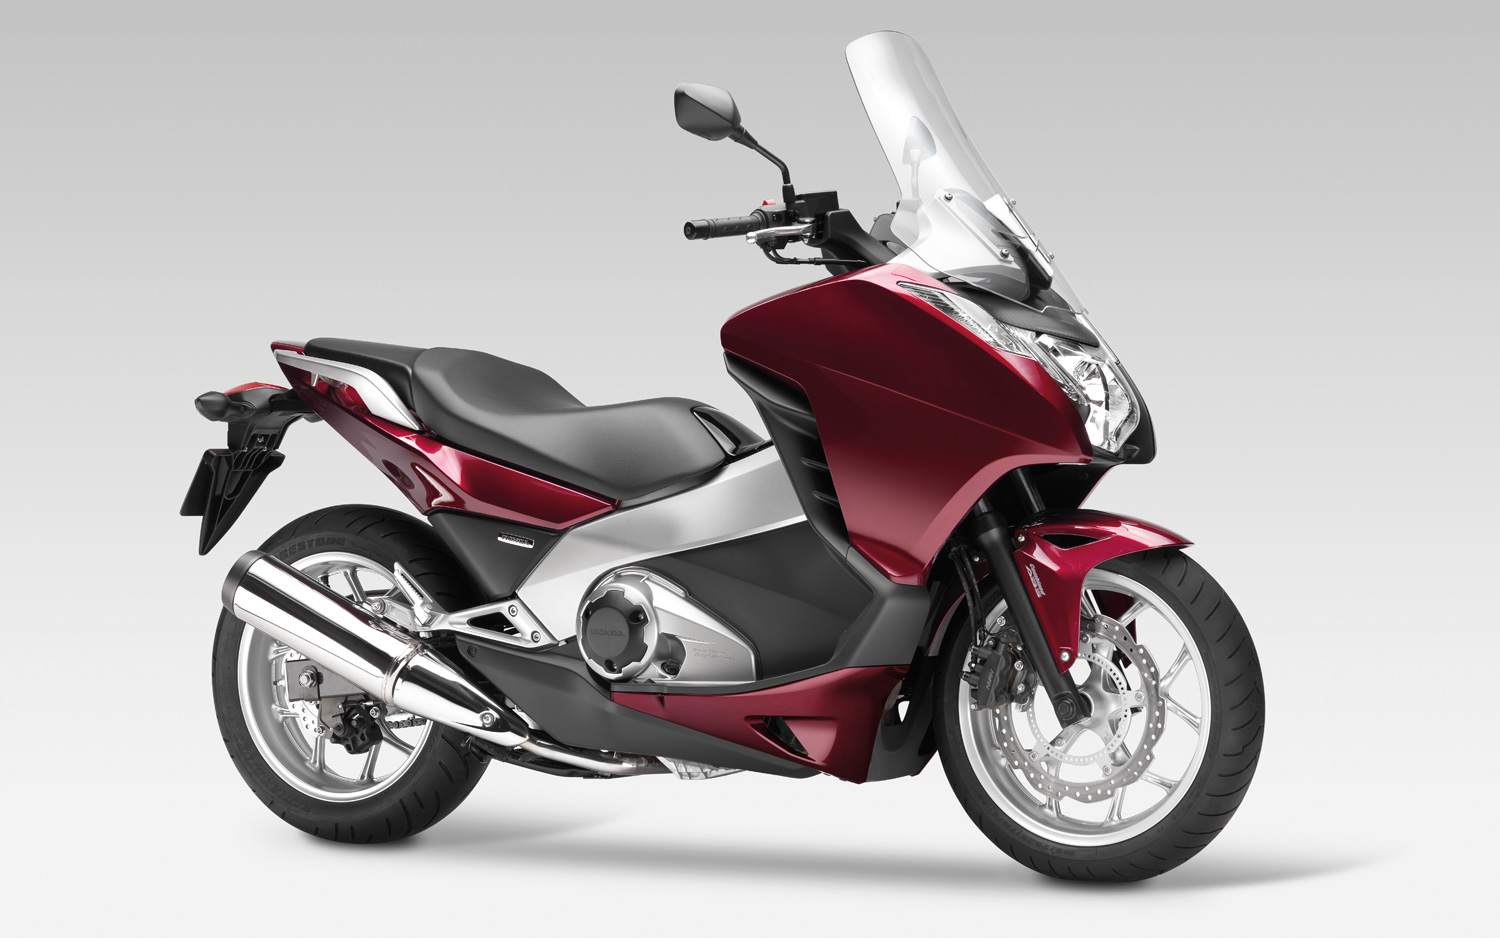 New Honda Motorcycle Scooter Gets Old Car Name